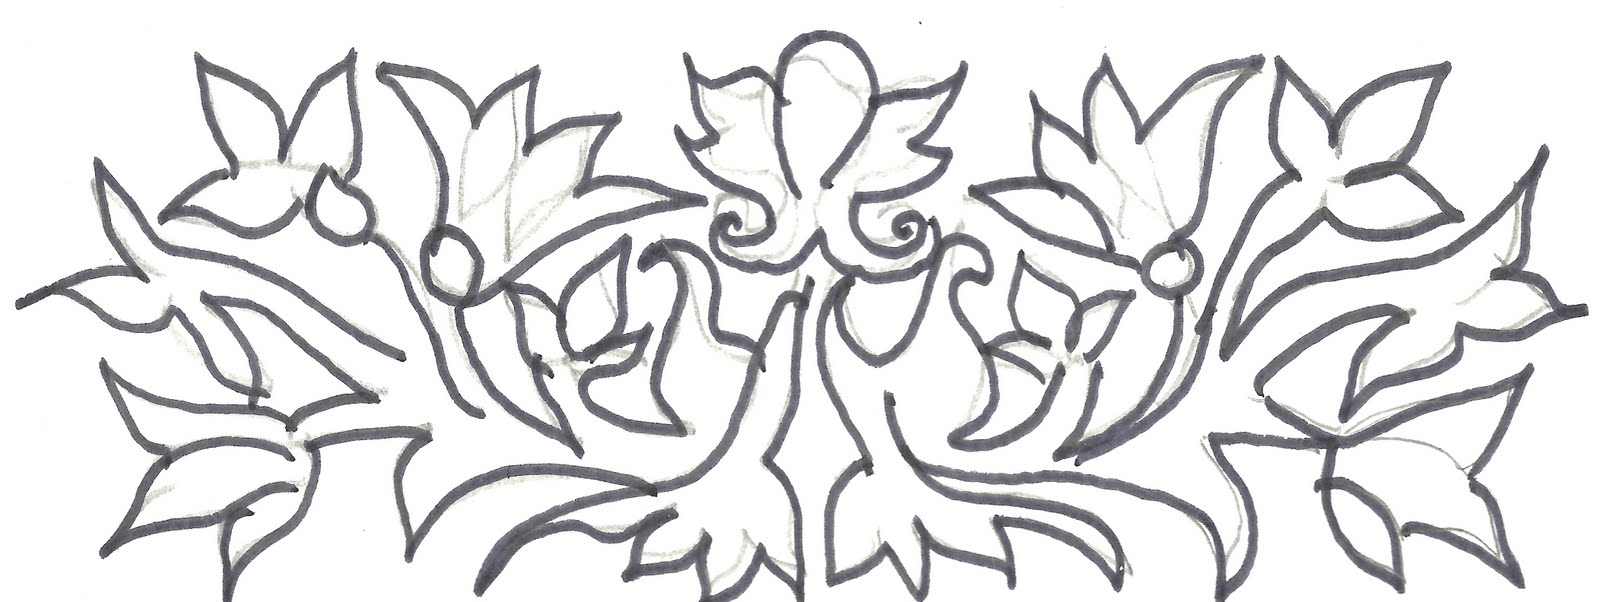 Bed sheet designs hand embroidery - Embroidery Embroidery Sketch Designs Thread Sketches Embroidery Hand